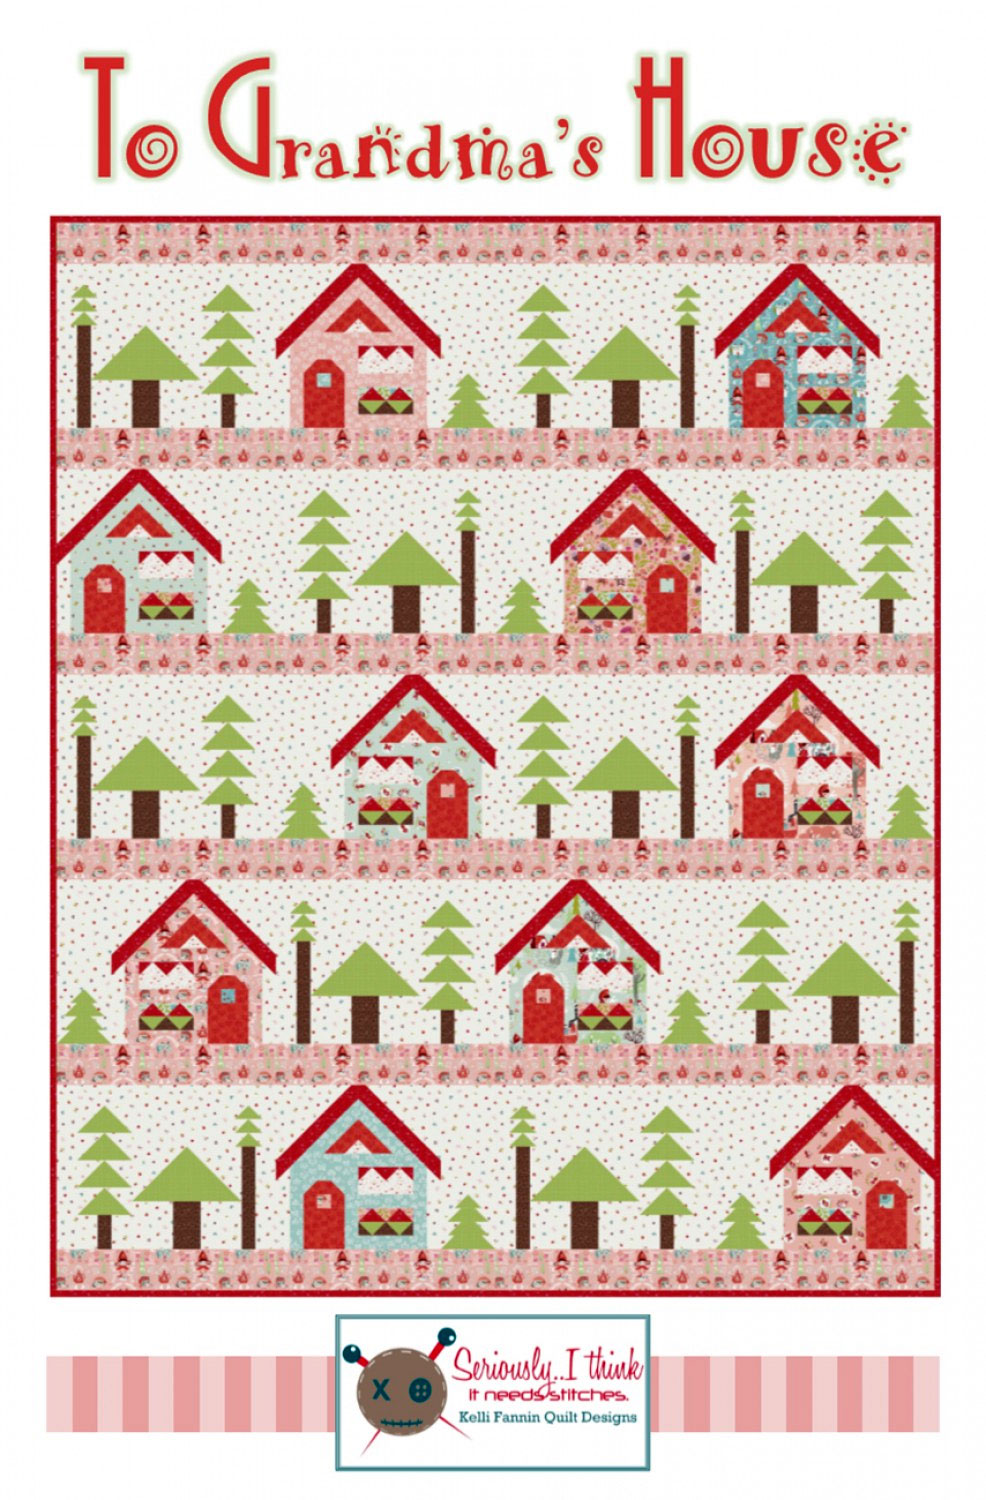 to-grandmas-house-quilt-sewing-pattern-Kelli-Fannin-Quilt-Designs-front